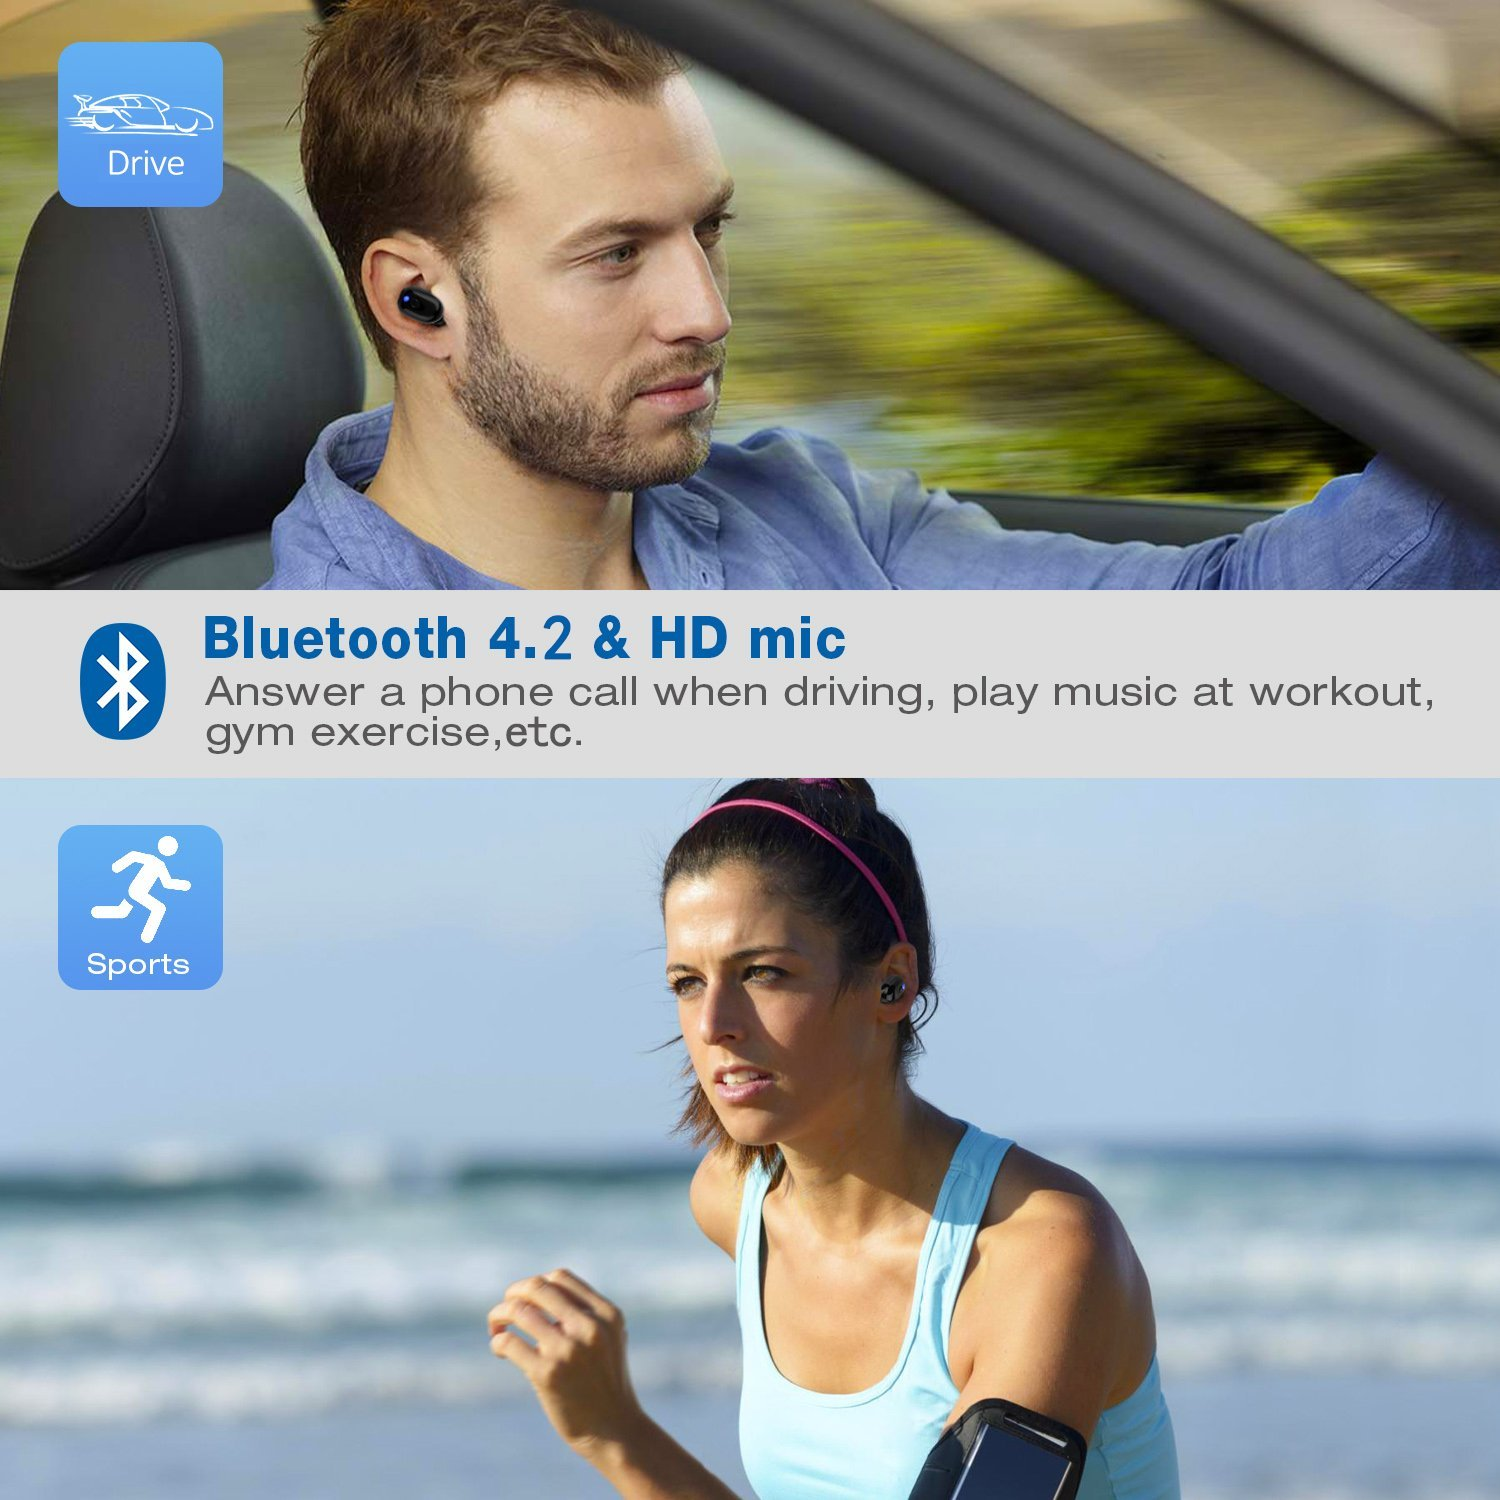 Bluetooth Mini Earbud Headphone Wireless Waterproof Sport Comfortable Earphone Mic Fit for iPhone Android Running Cycling(1 Pc)